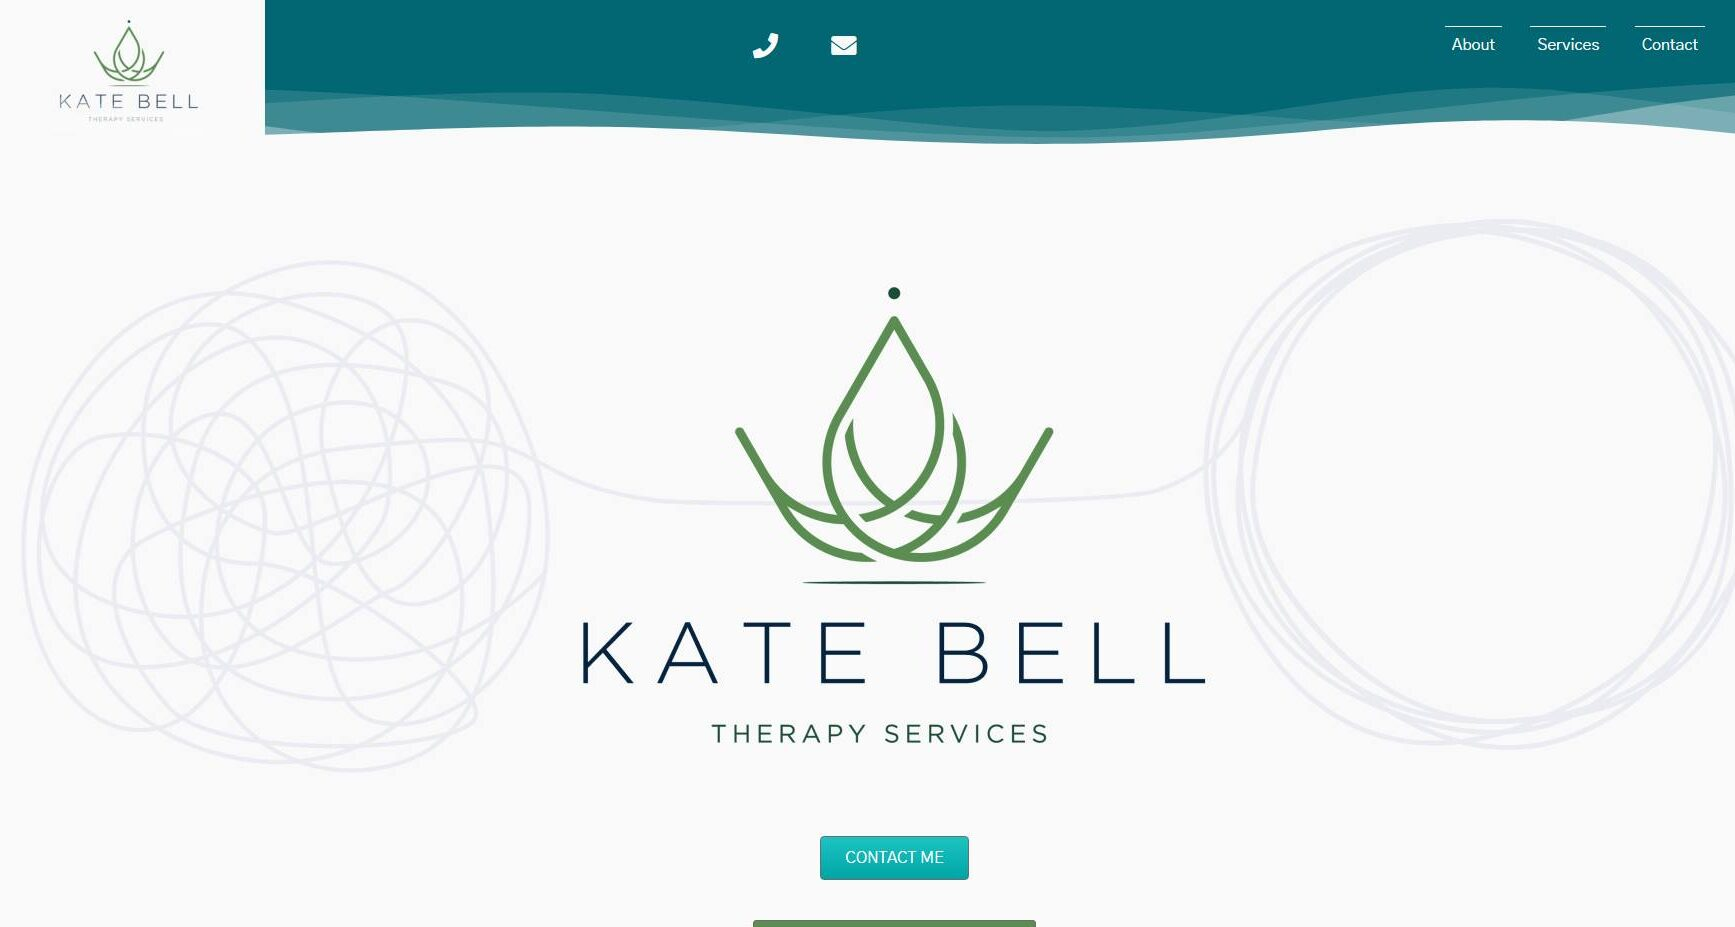 Kate Bell Therapy Services - Website